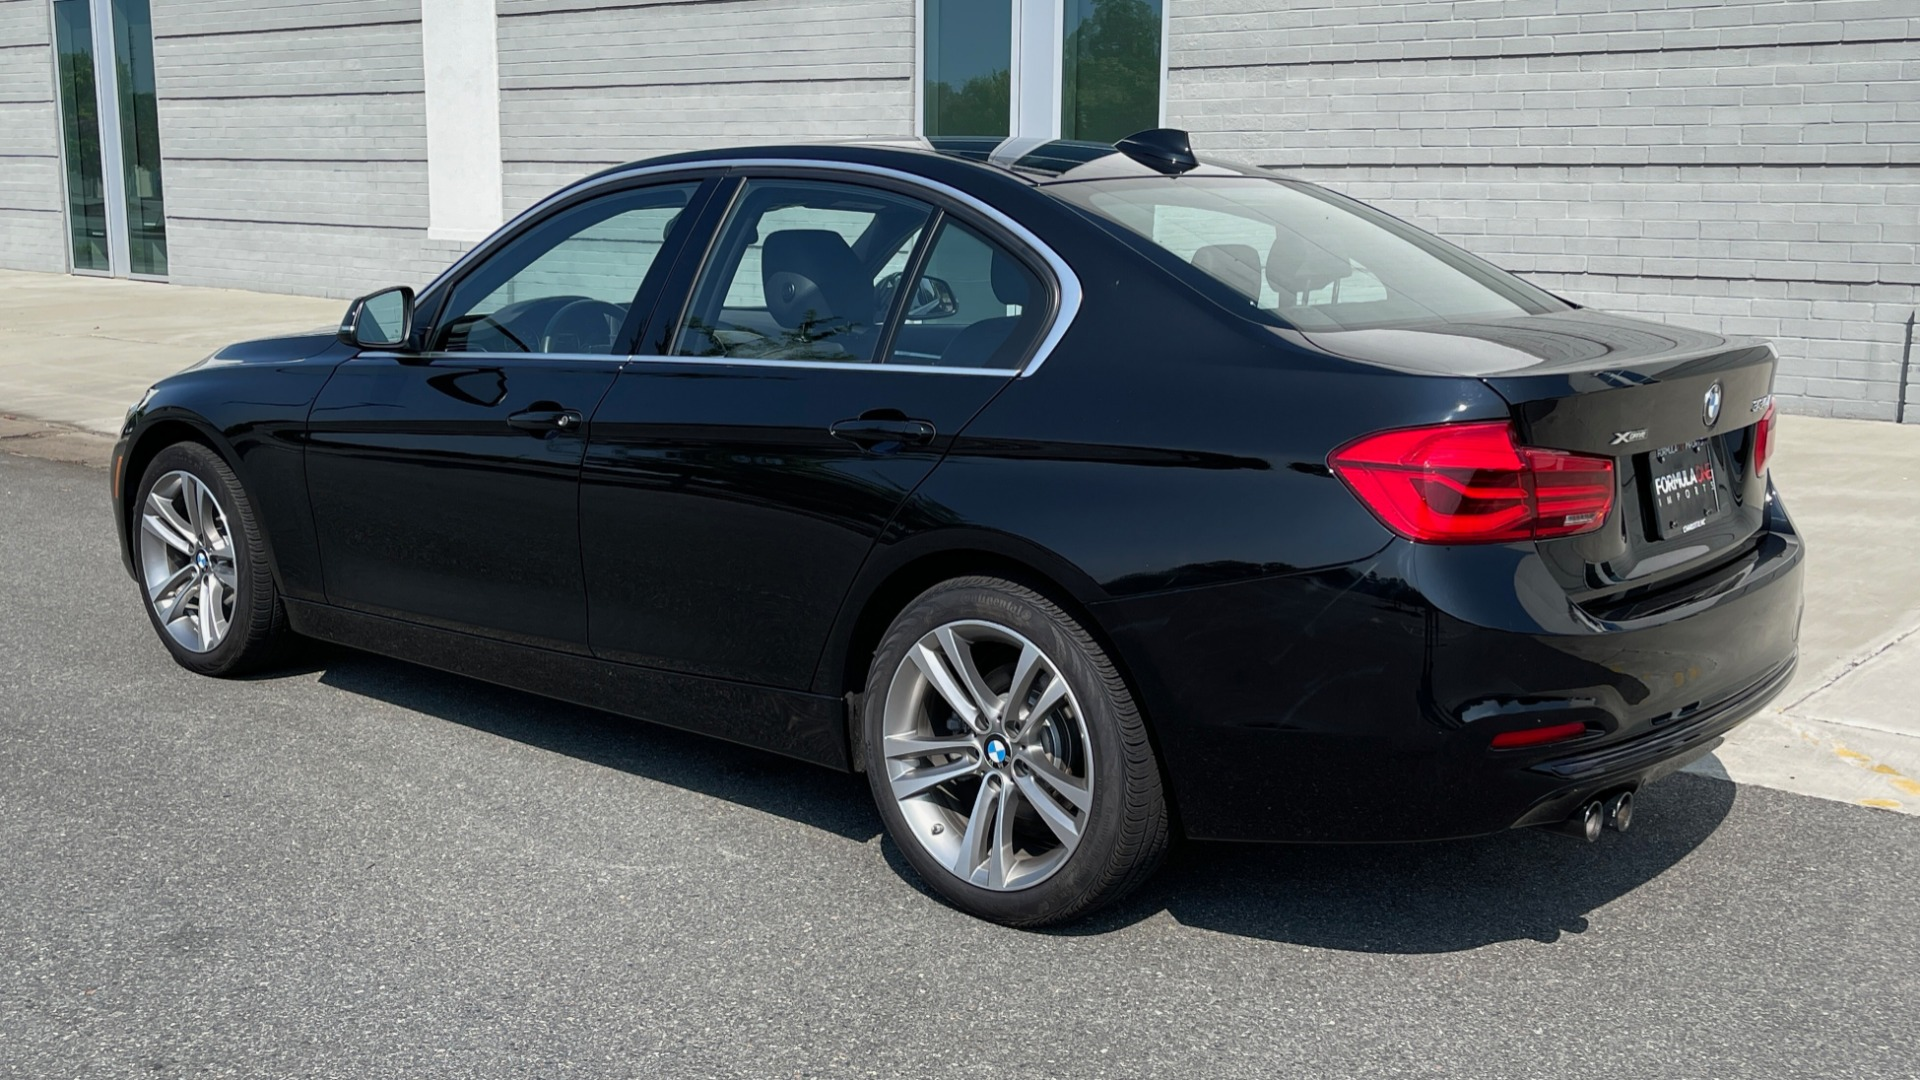 Used 2018 BMW 3 SERIES 330I XDRIVE / CONV PKG / SUNROOF / HTD STS / ABSD / REARVIEW for sale $30,695 at Formula Imports in Charlotte NC 28227 5